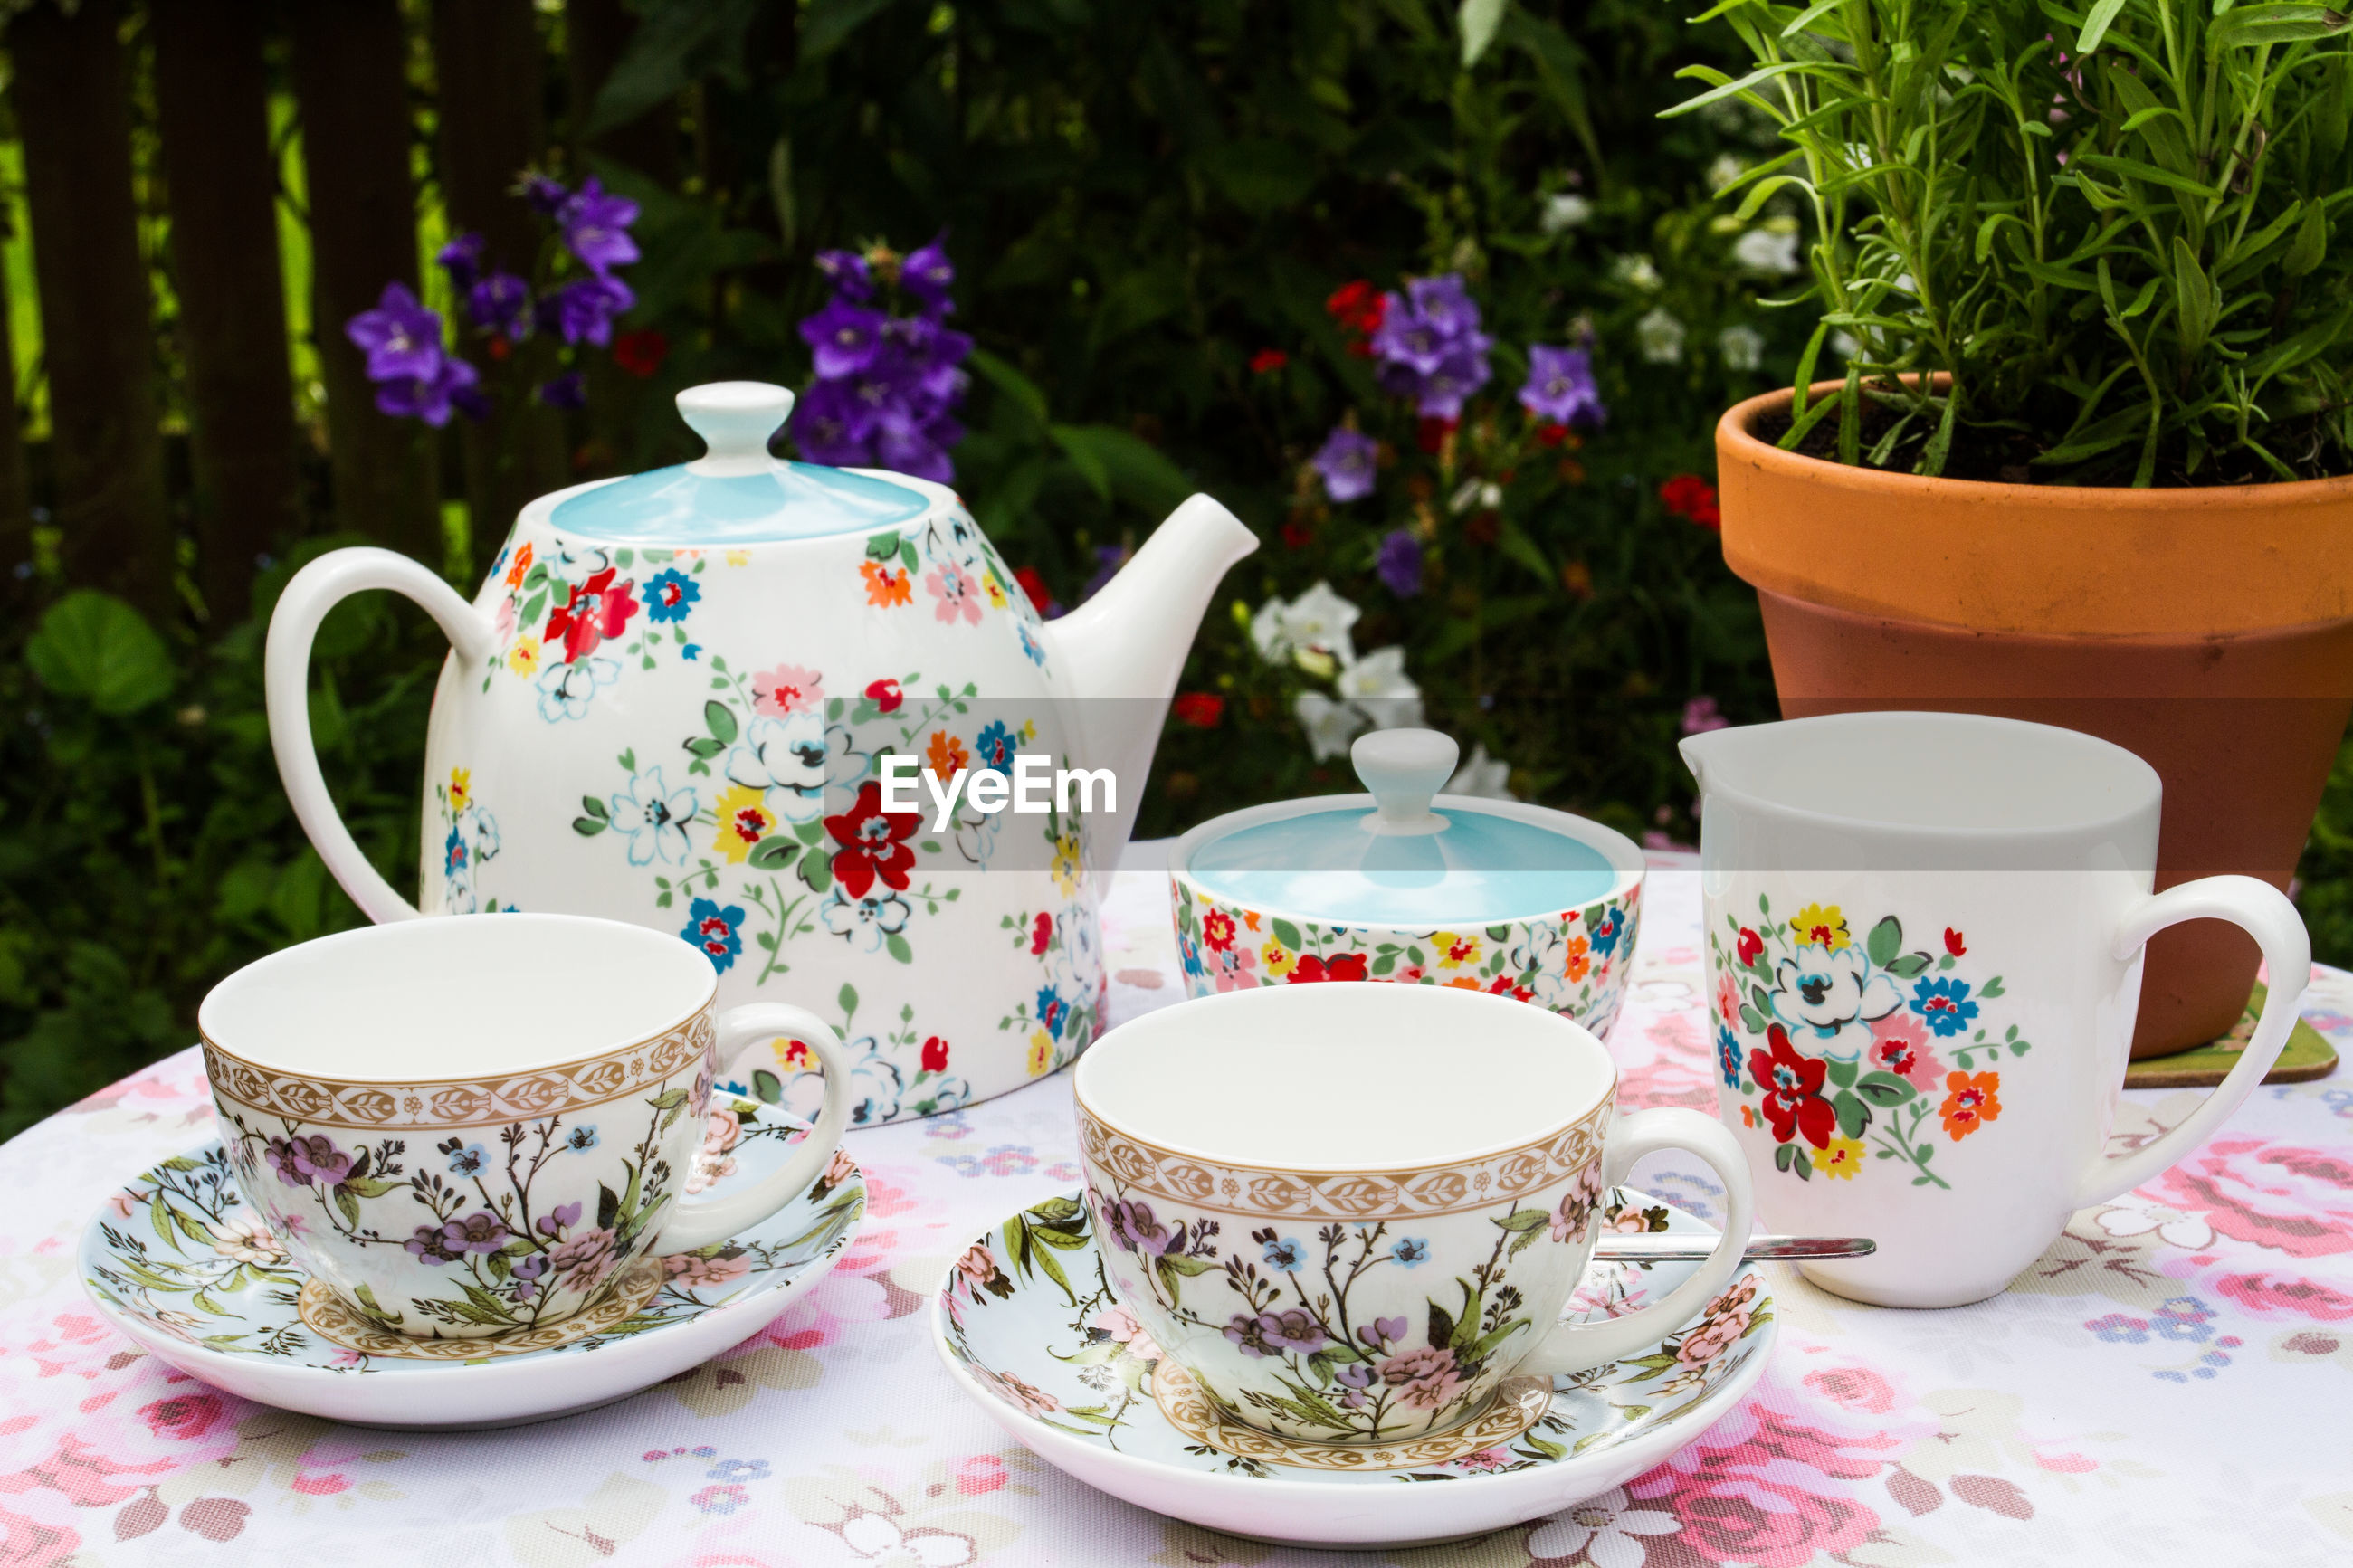 Close-up of crockery by potted plant on table